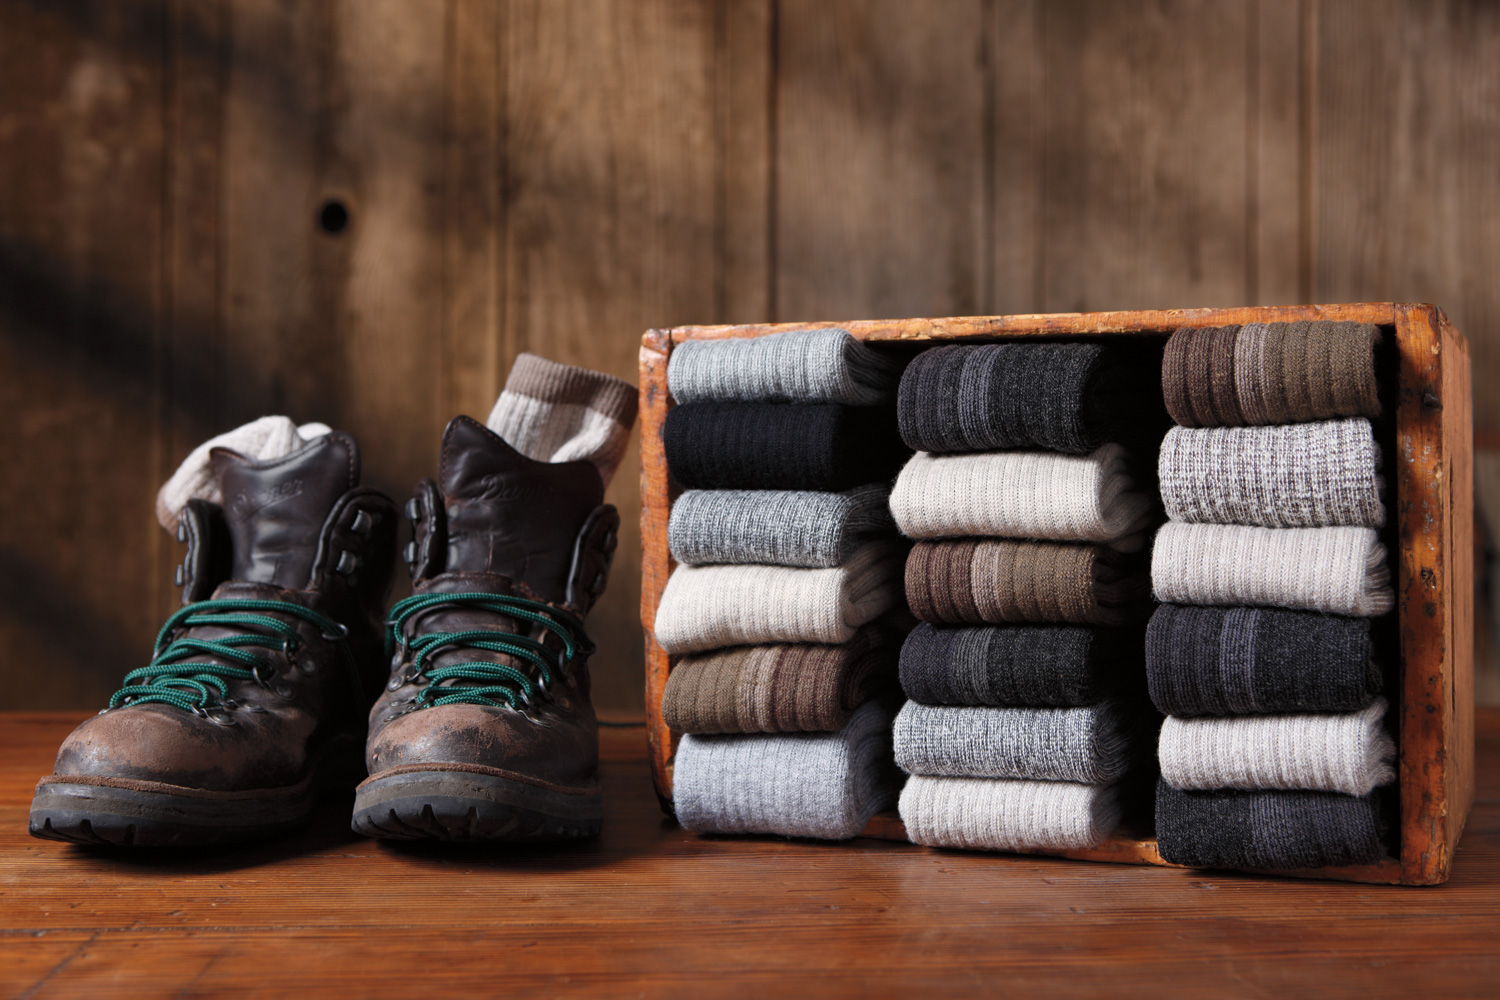 Product photography shot in studio: Danner wool sock collection.